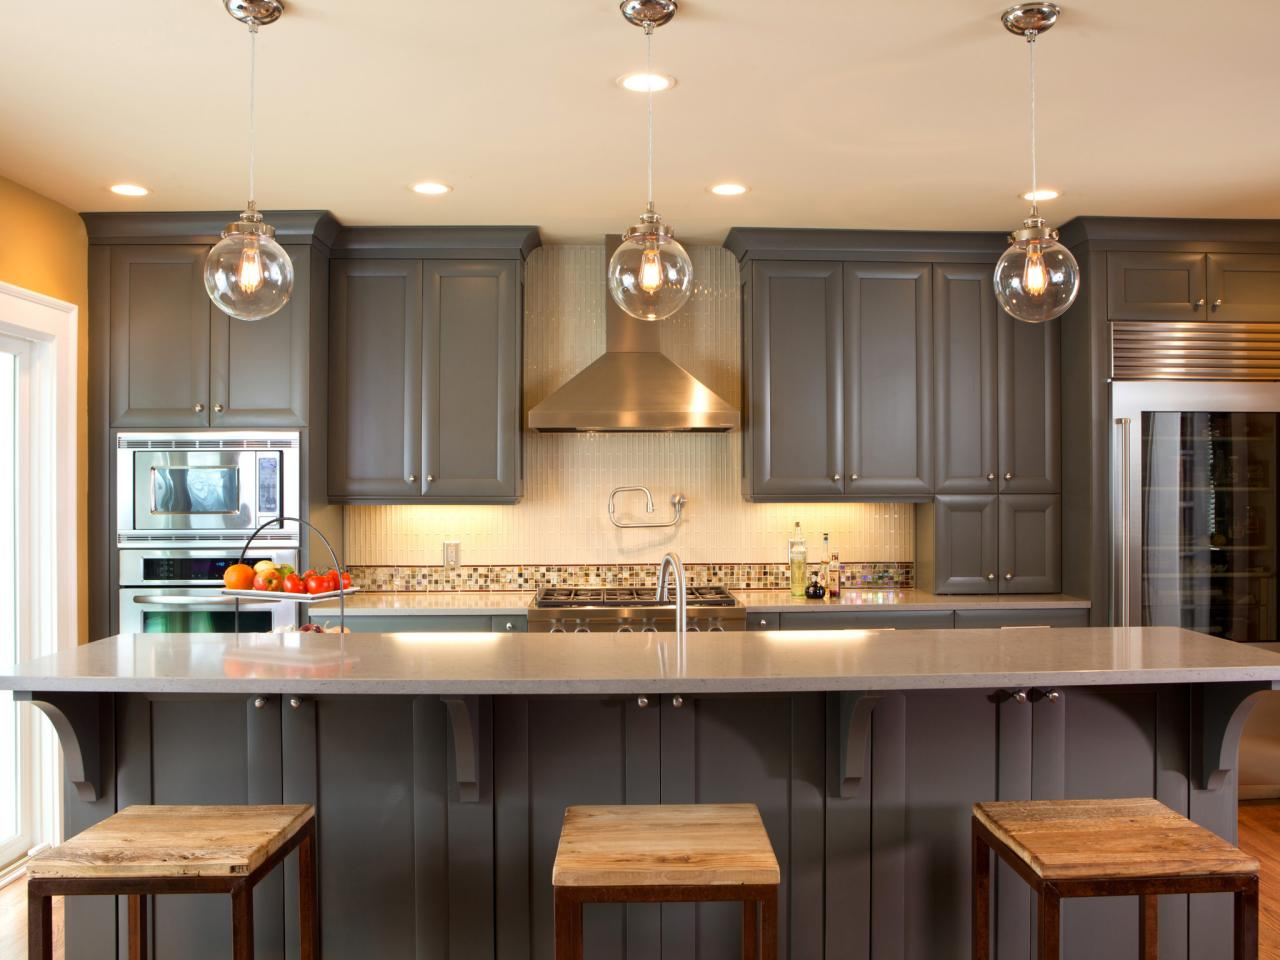 good Ideas For Redoing Kitchen Cabinets #1: Ideas for Painting Kitchen Cabinets